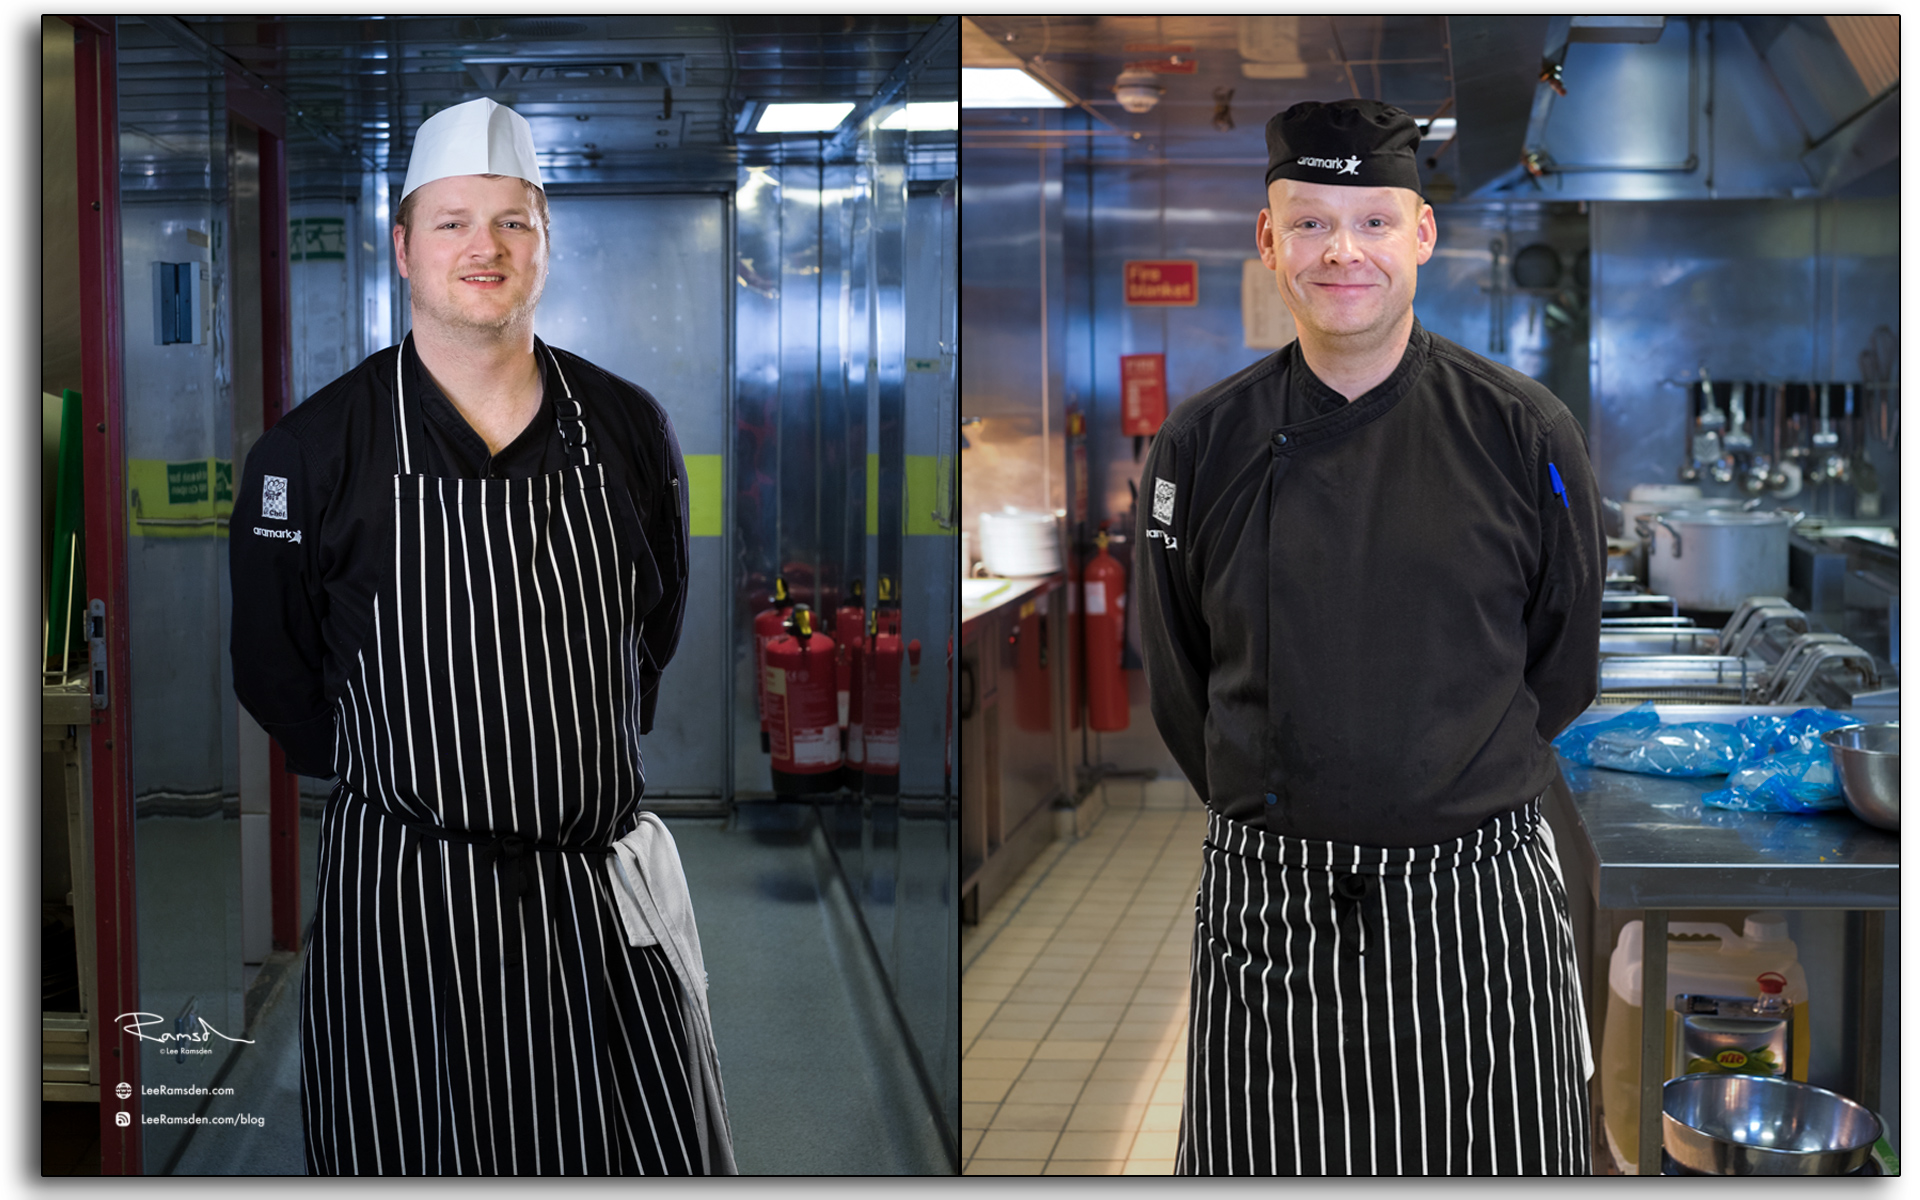 blog Catering, chefs, cooks, kitchen, working, industrial, aramark, offshore, north sea, hospitality, oil rig, BP Miller, Petrofac, hotel, Photo by Lee Ramsden.